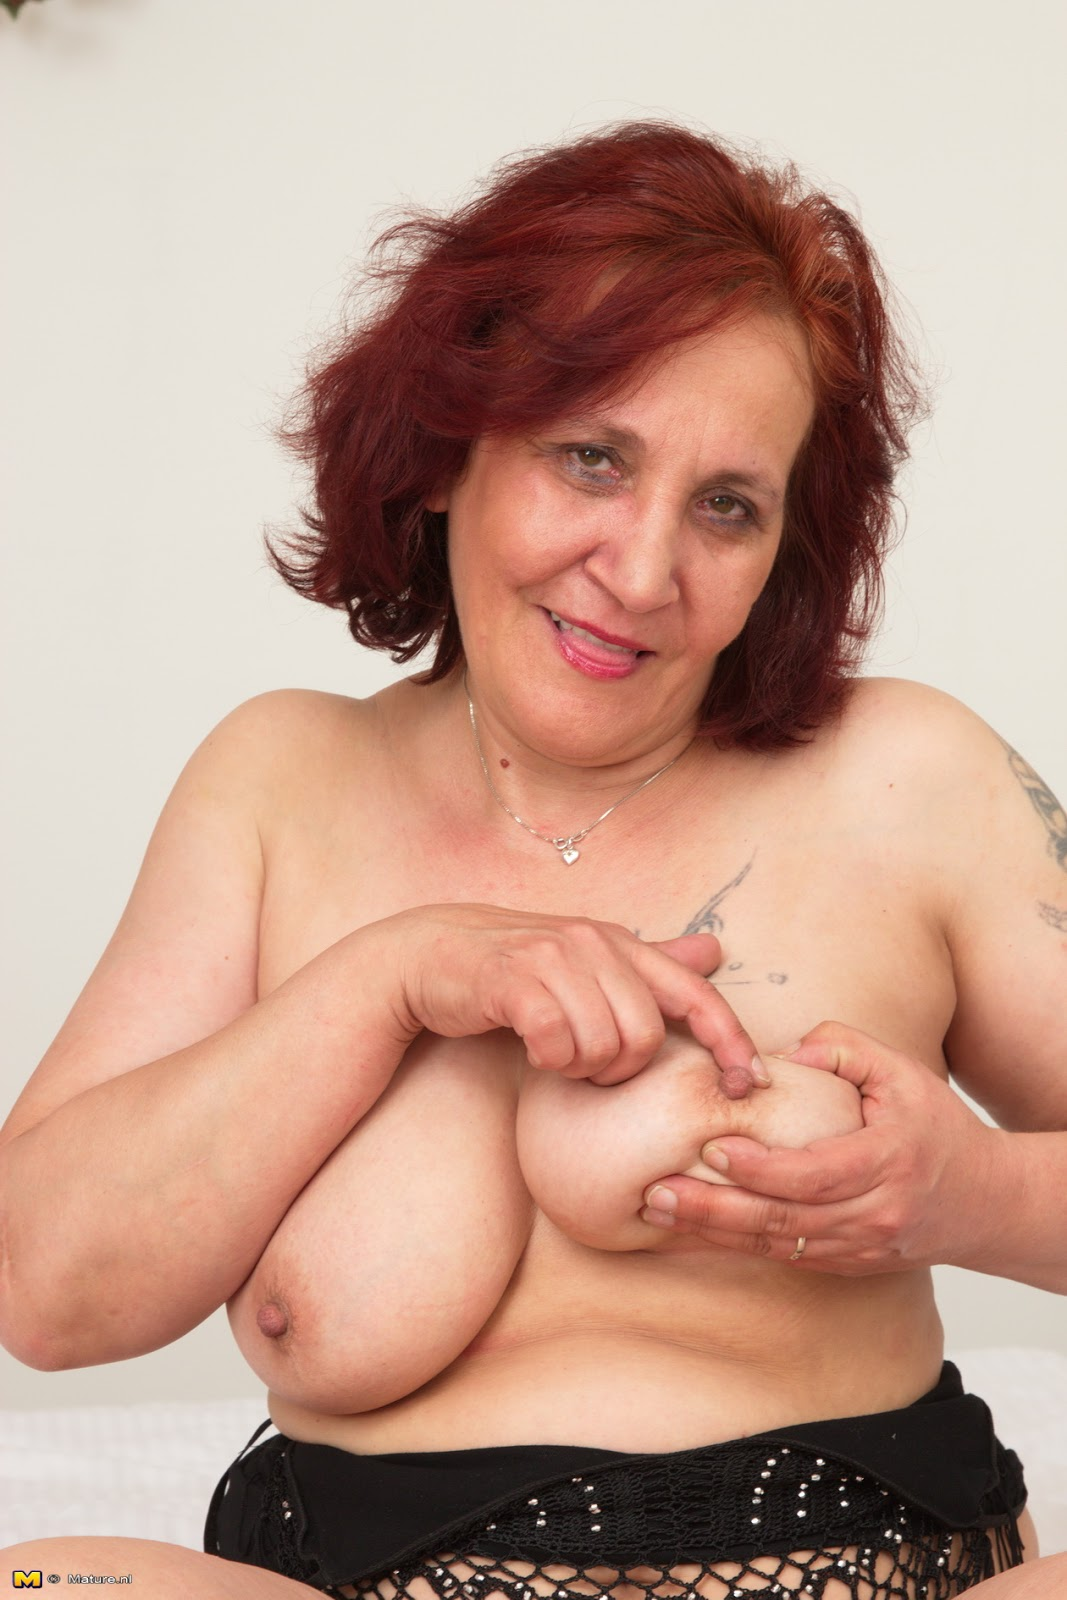 Free porn: Mature, Granny, Amateur, Solo, Lesbian, Interracial, Mom, Masturbation, Wife, Old And Young, Japanese, Massage, Homemade, Milf, Stockings and much more.